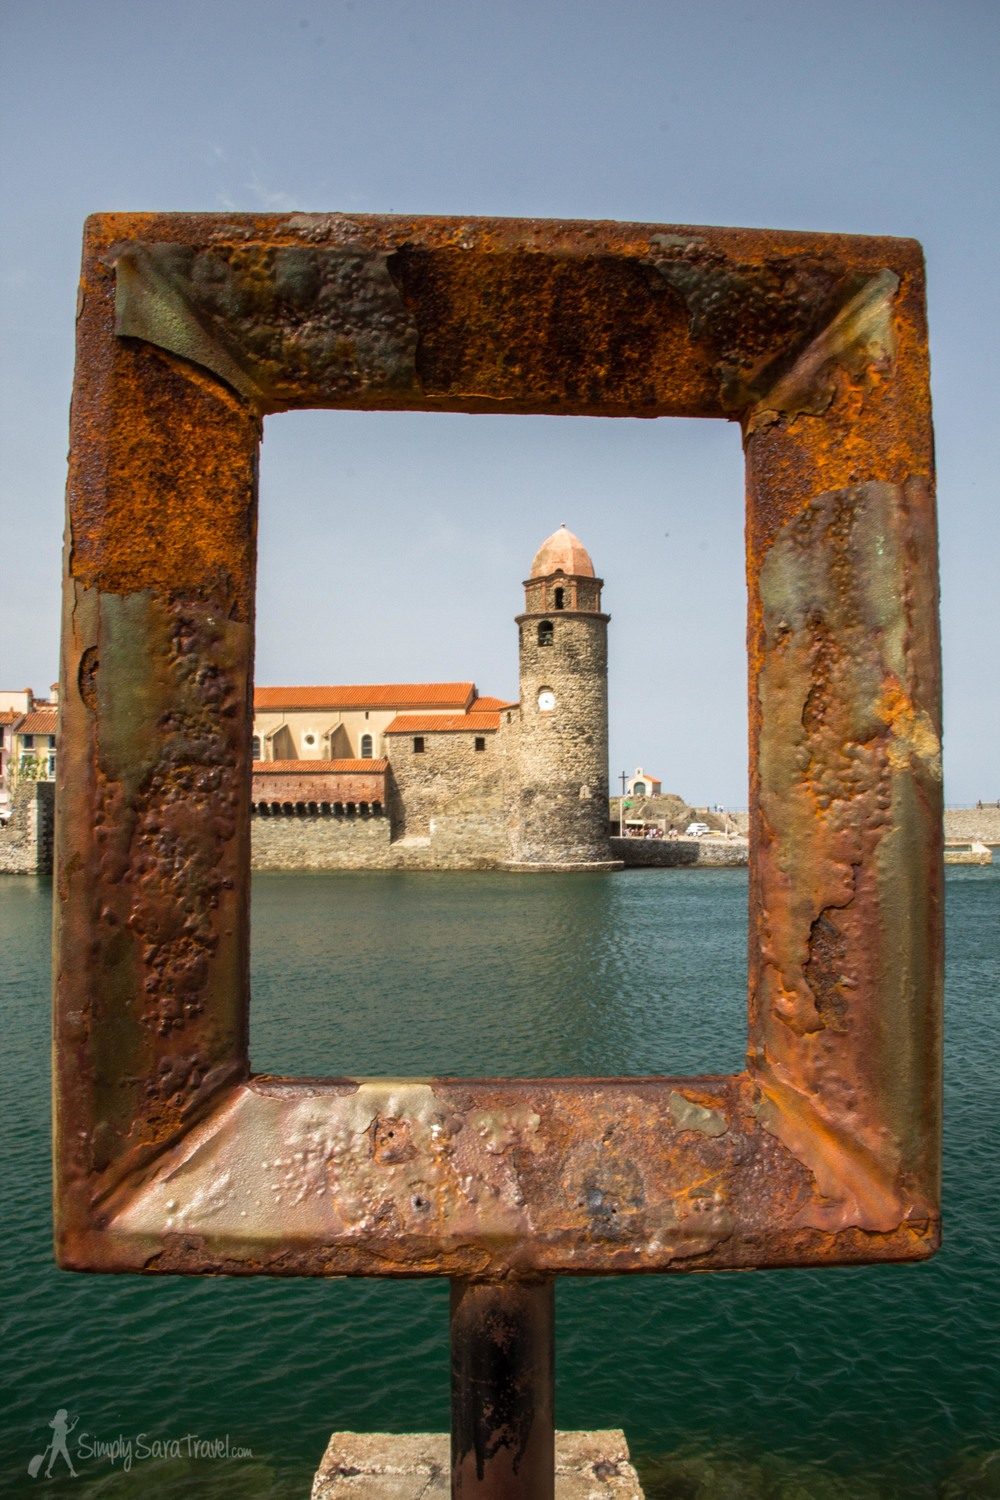 One of our day trips included exploring the beautiful town of Collioure in southern France.